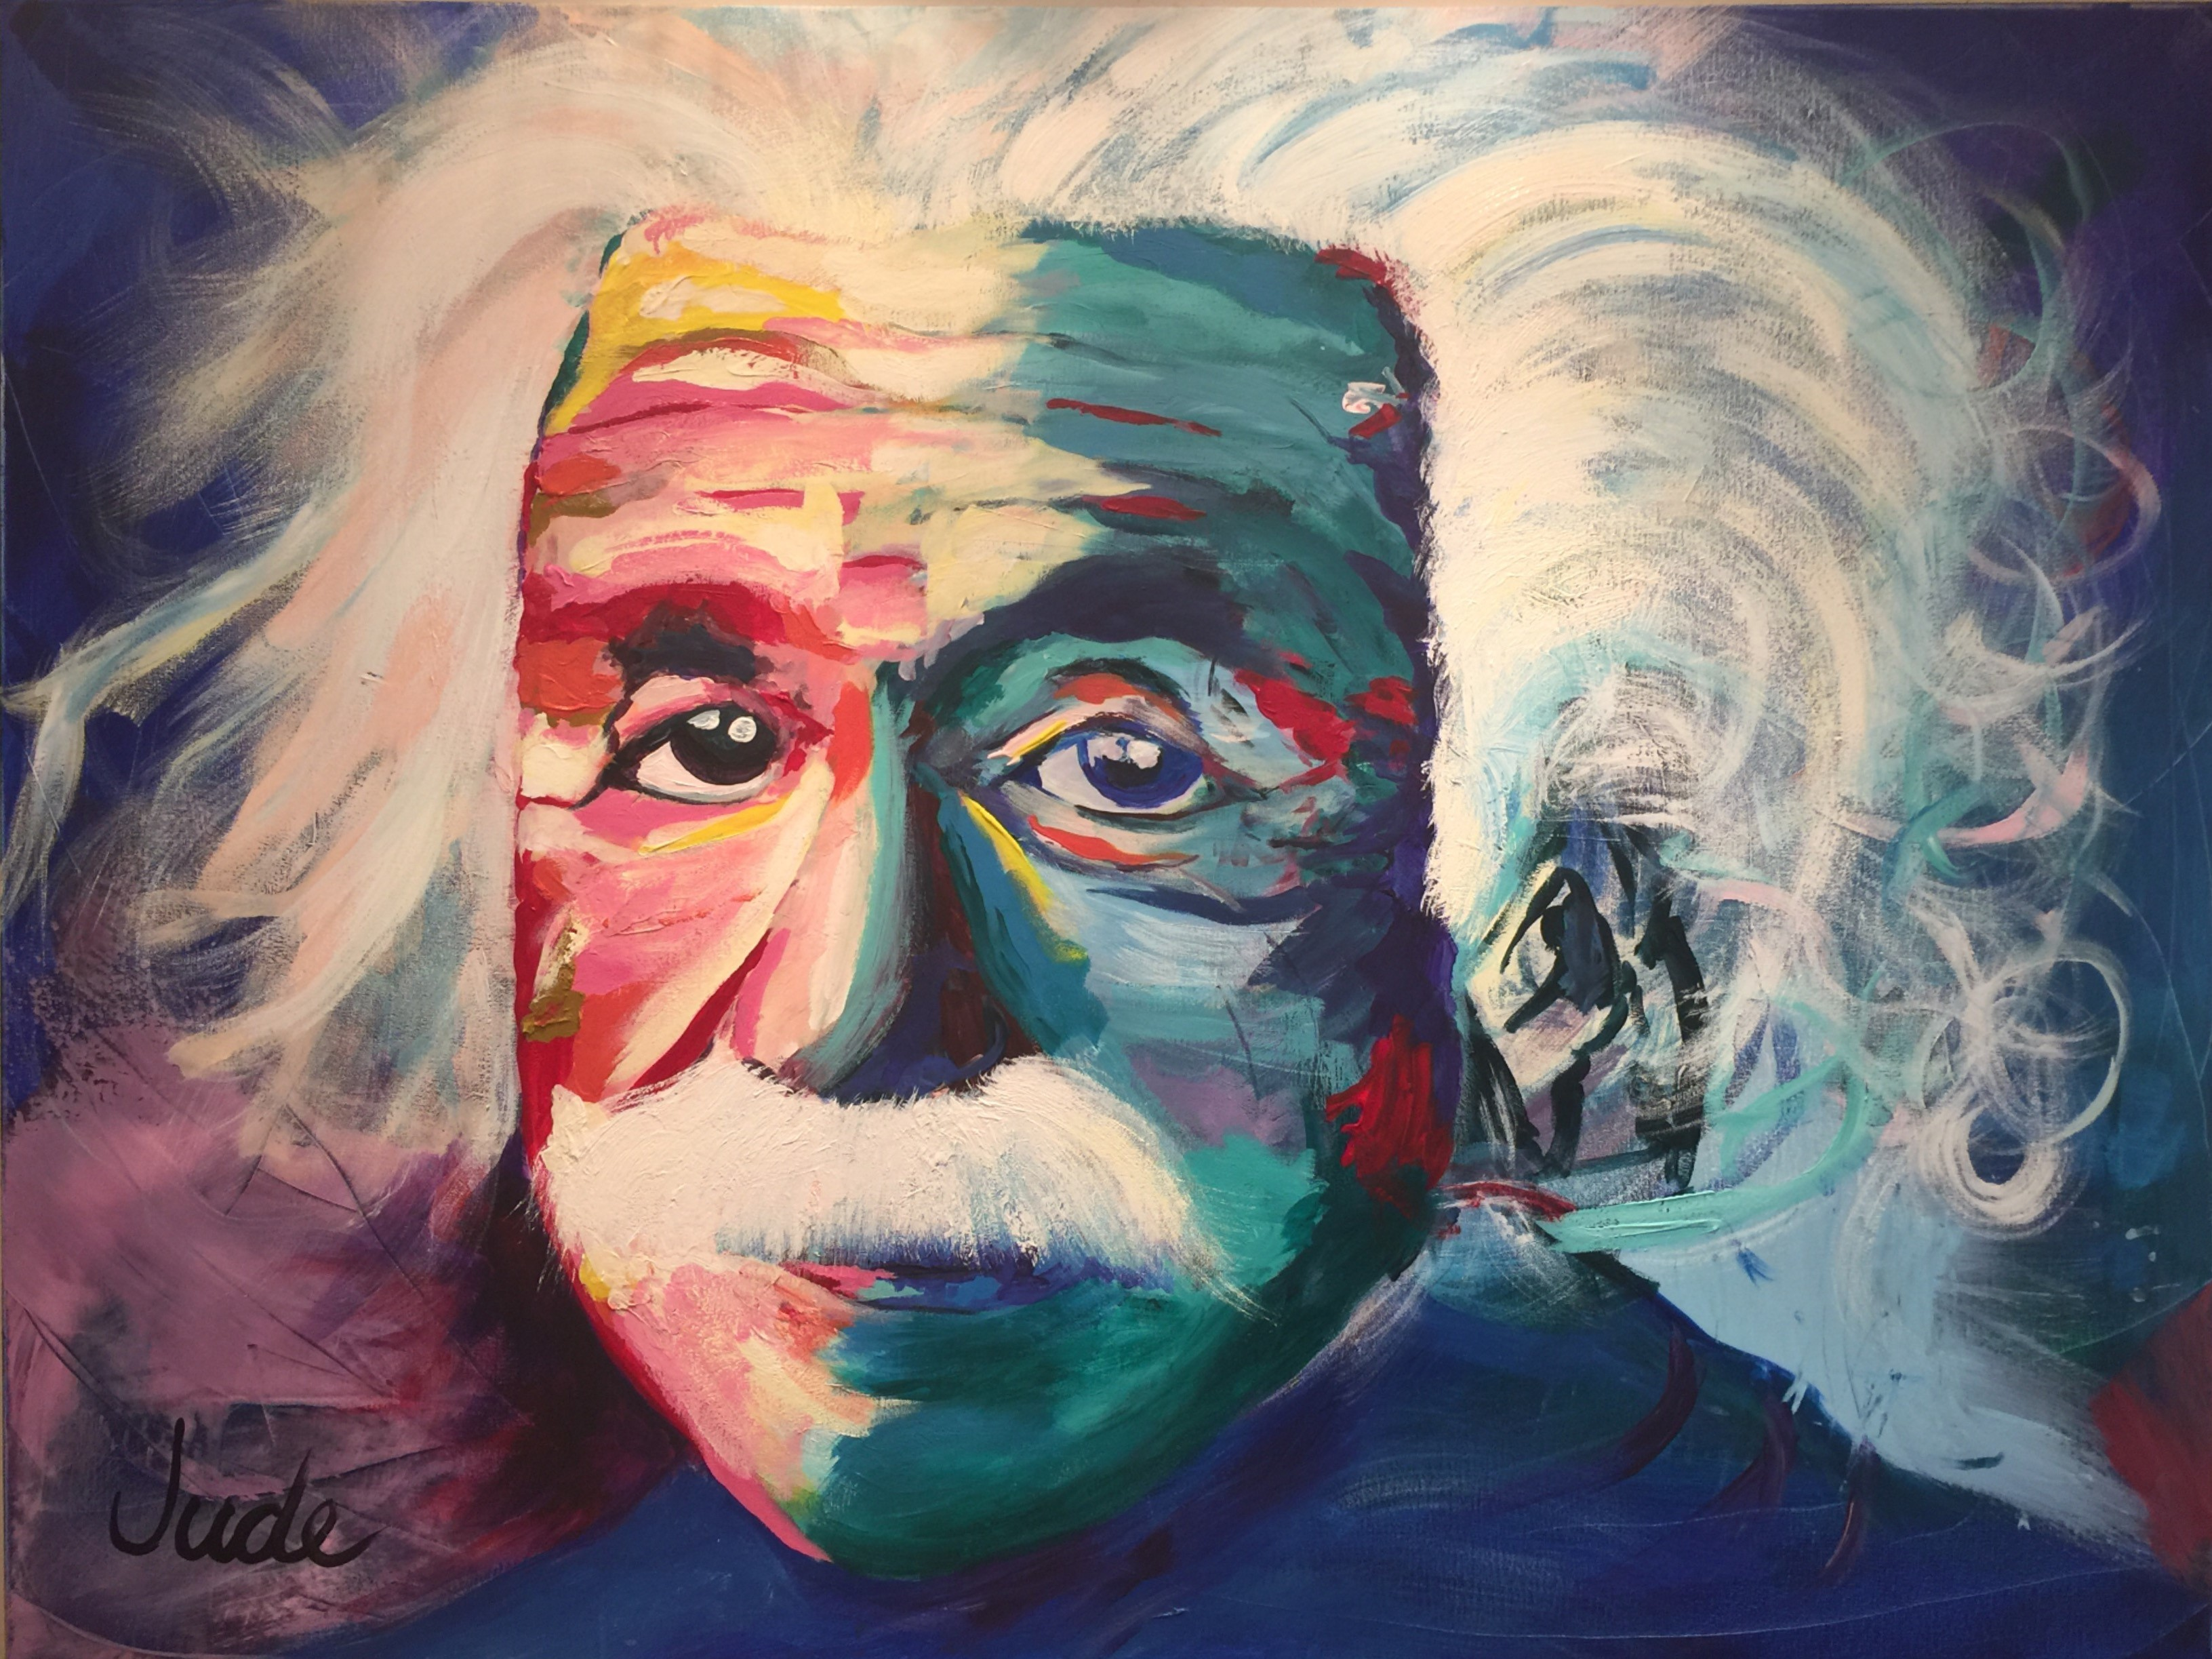 Exhibit 20: Albert Einstein